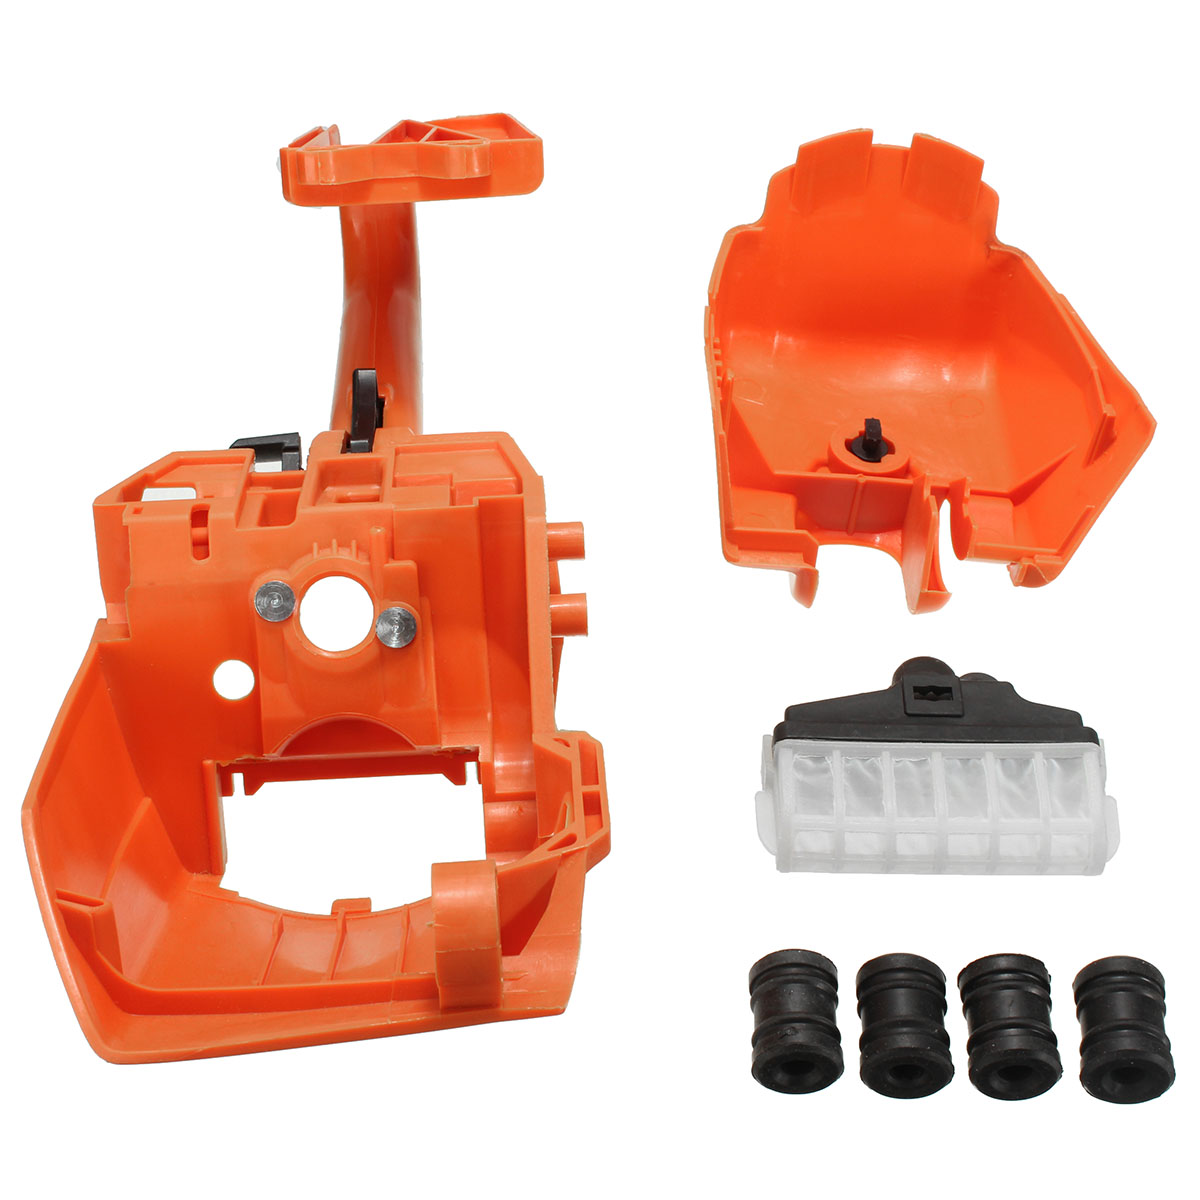 Orange Rear Handle Chainsaw Parts Air Filter Cover For STIHL MS250 ...